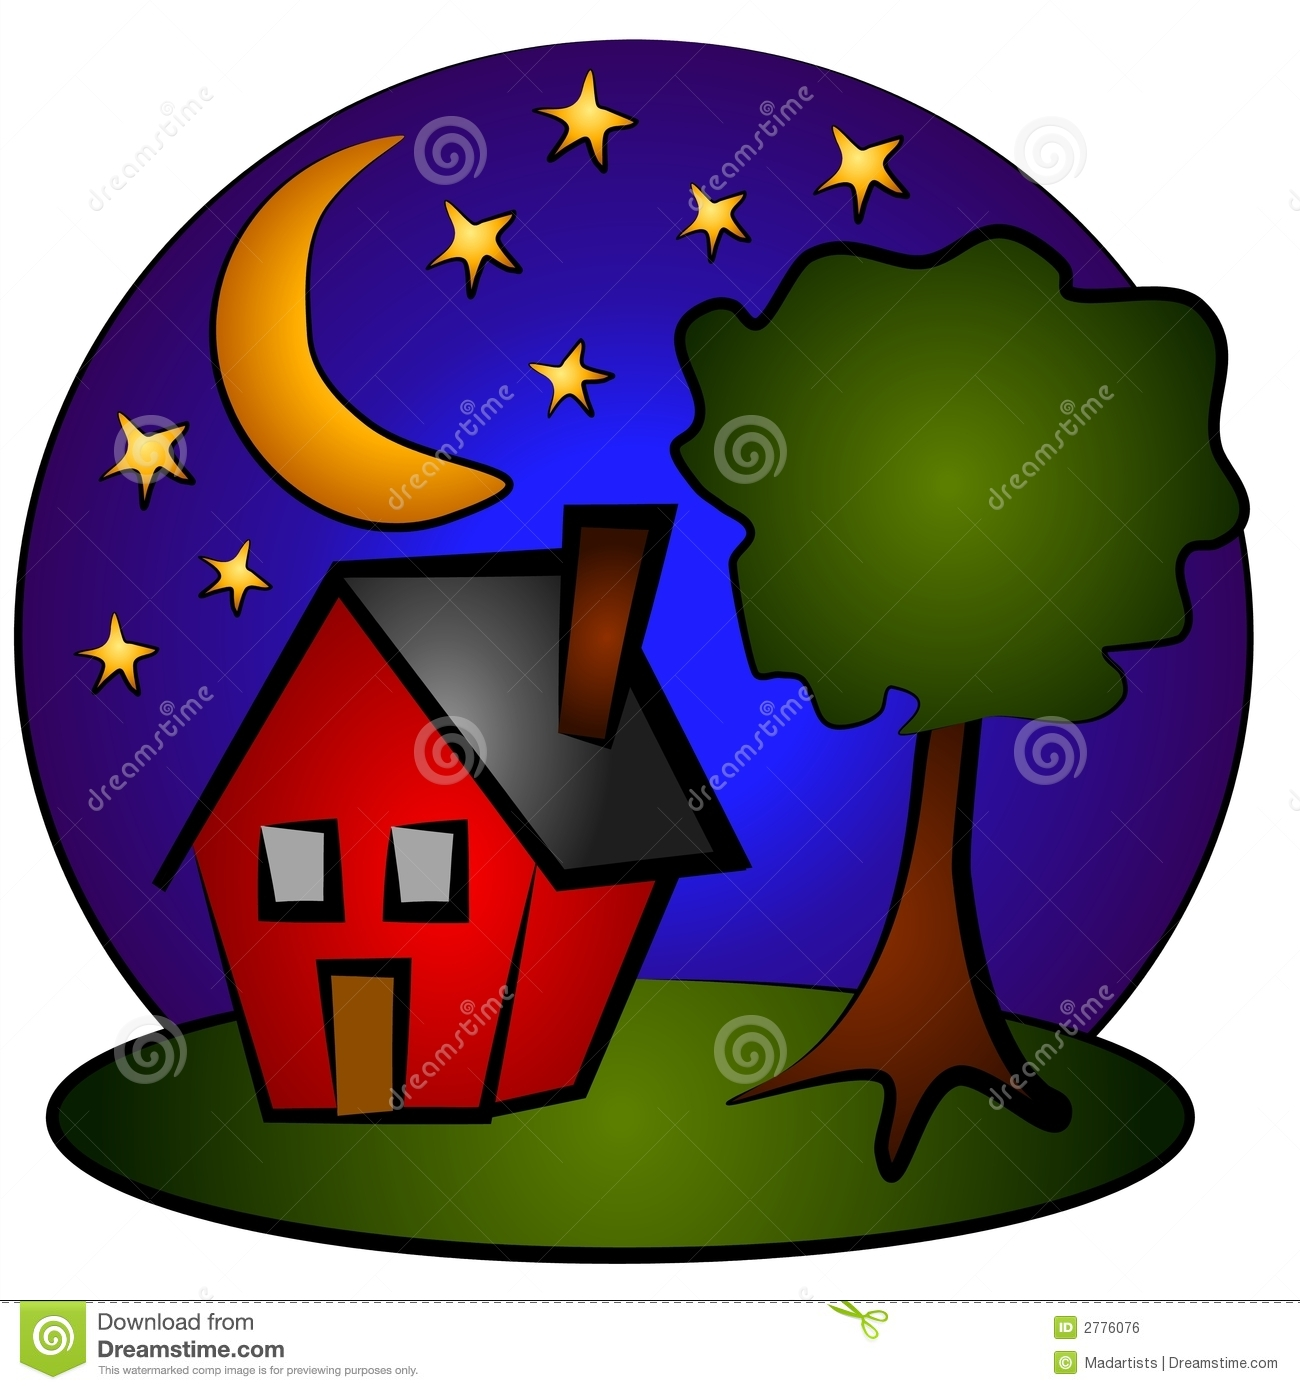 Night clipart. Free images at clker